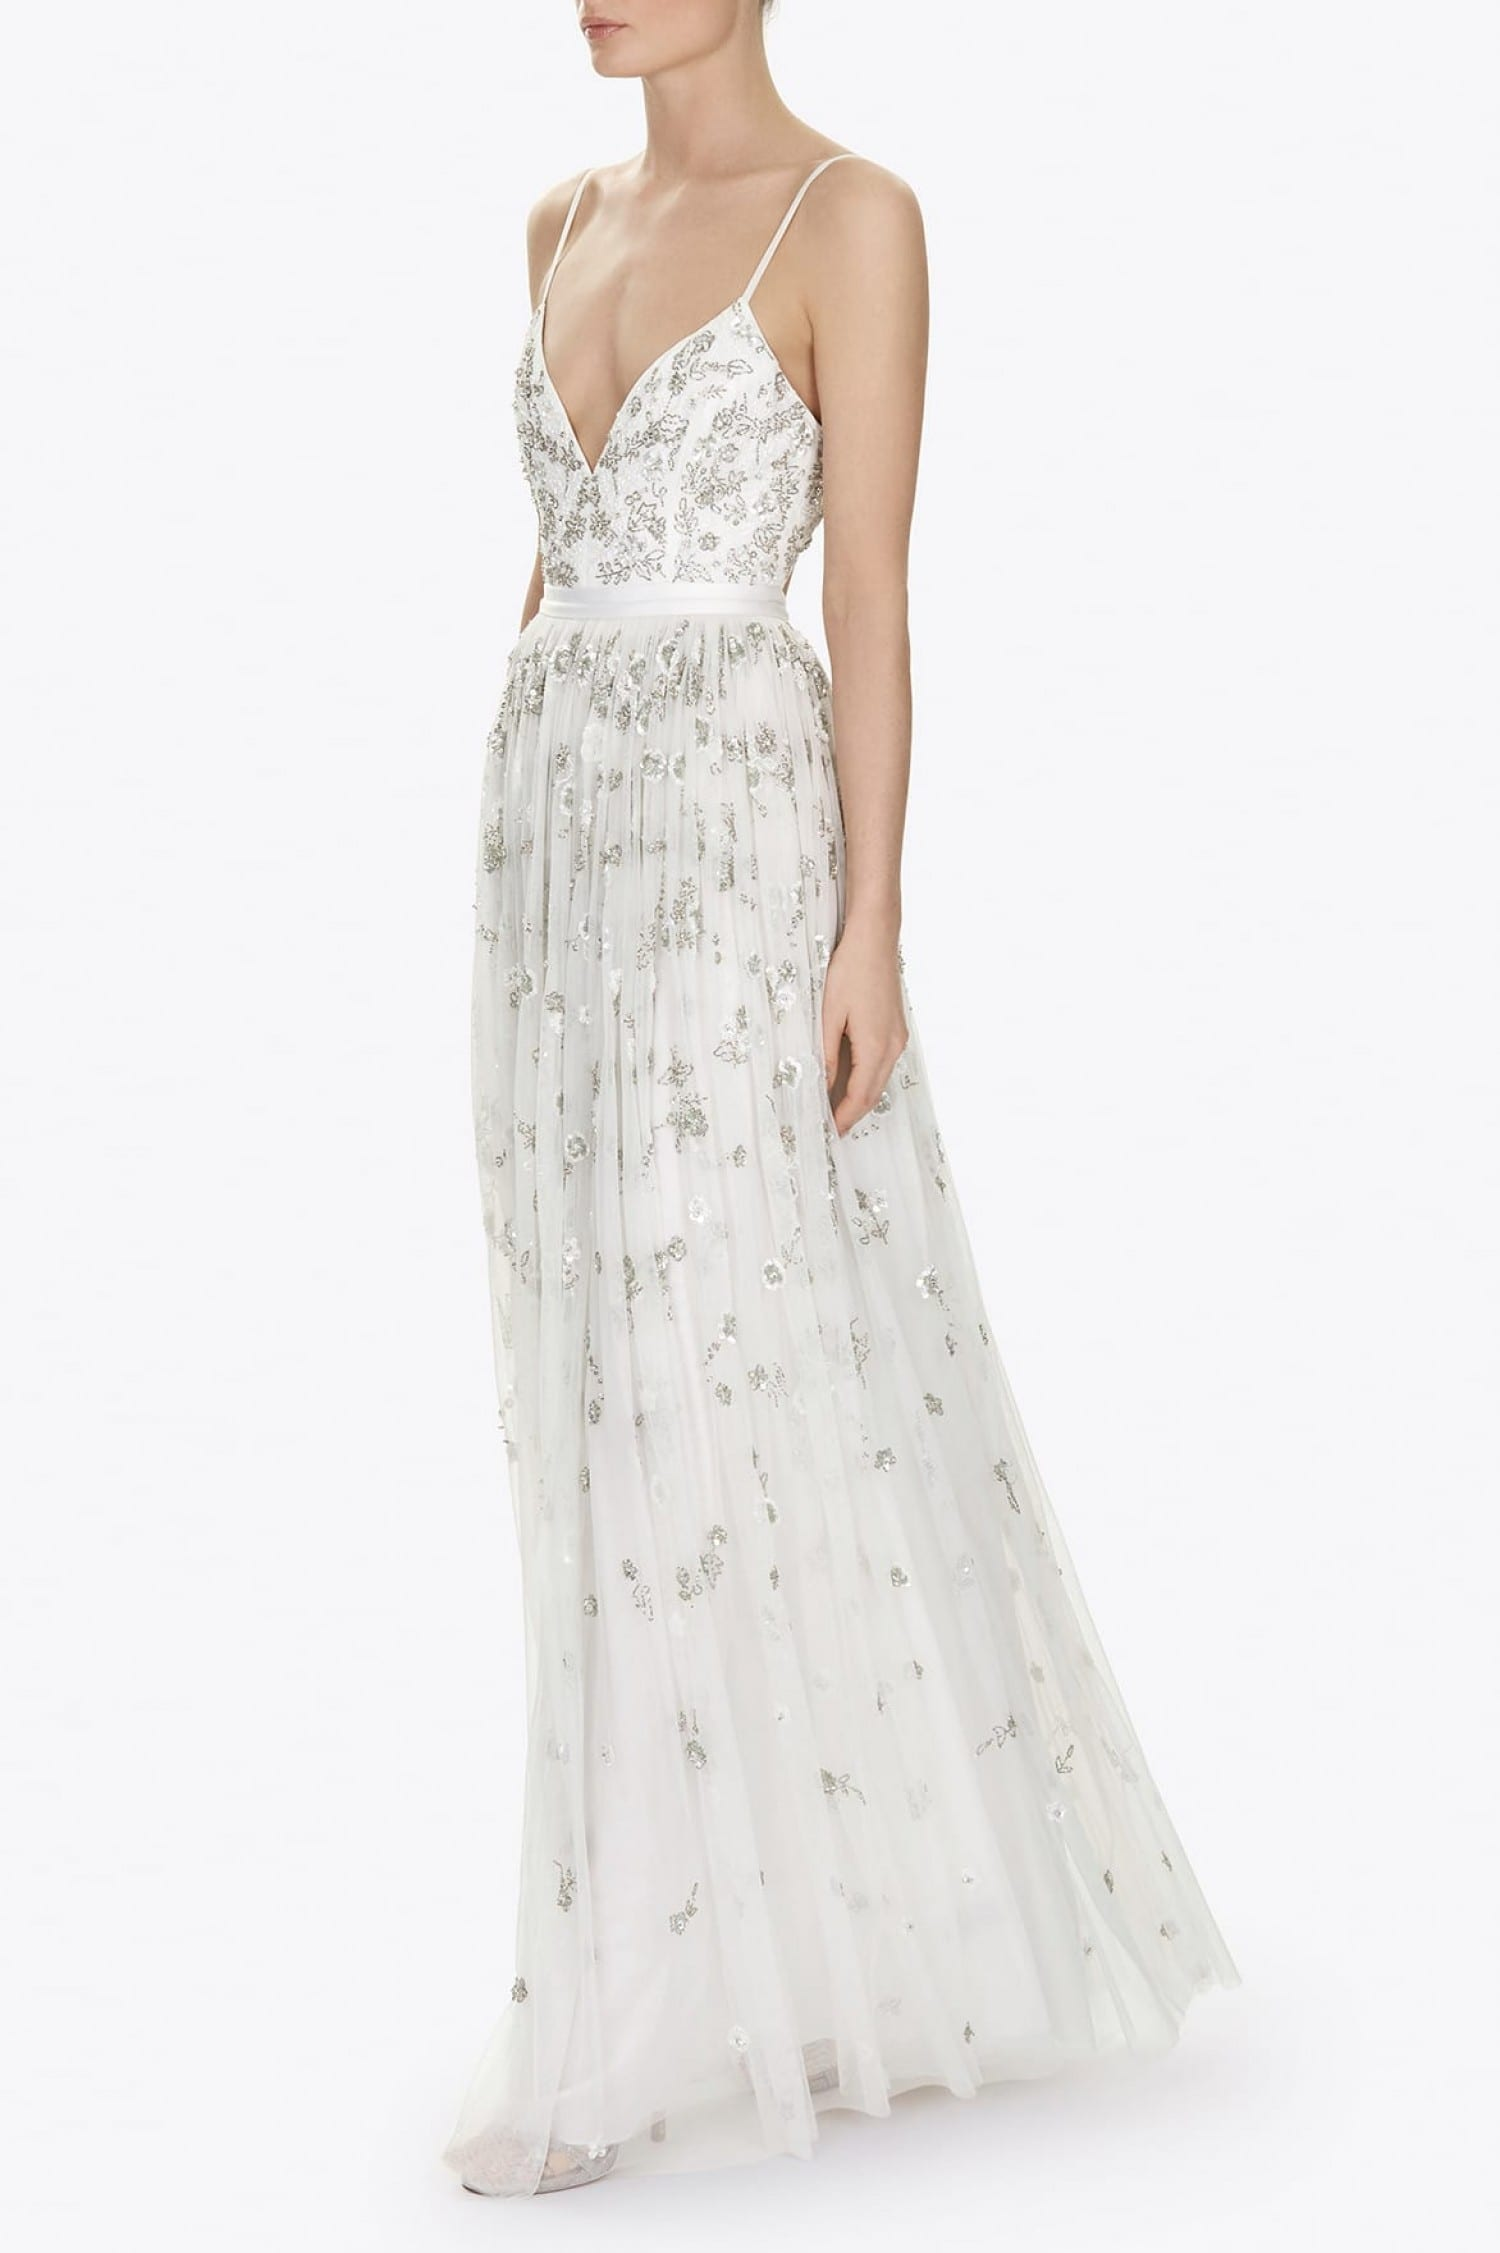 NEEDLEANDTHREAD Astral Maxi White Dress